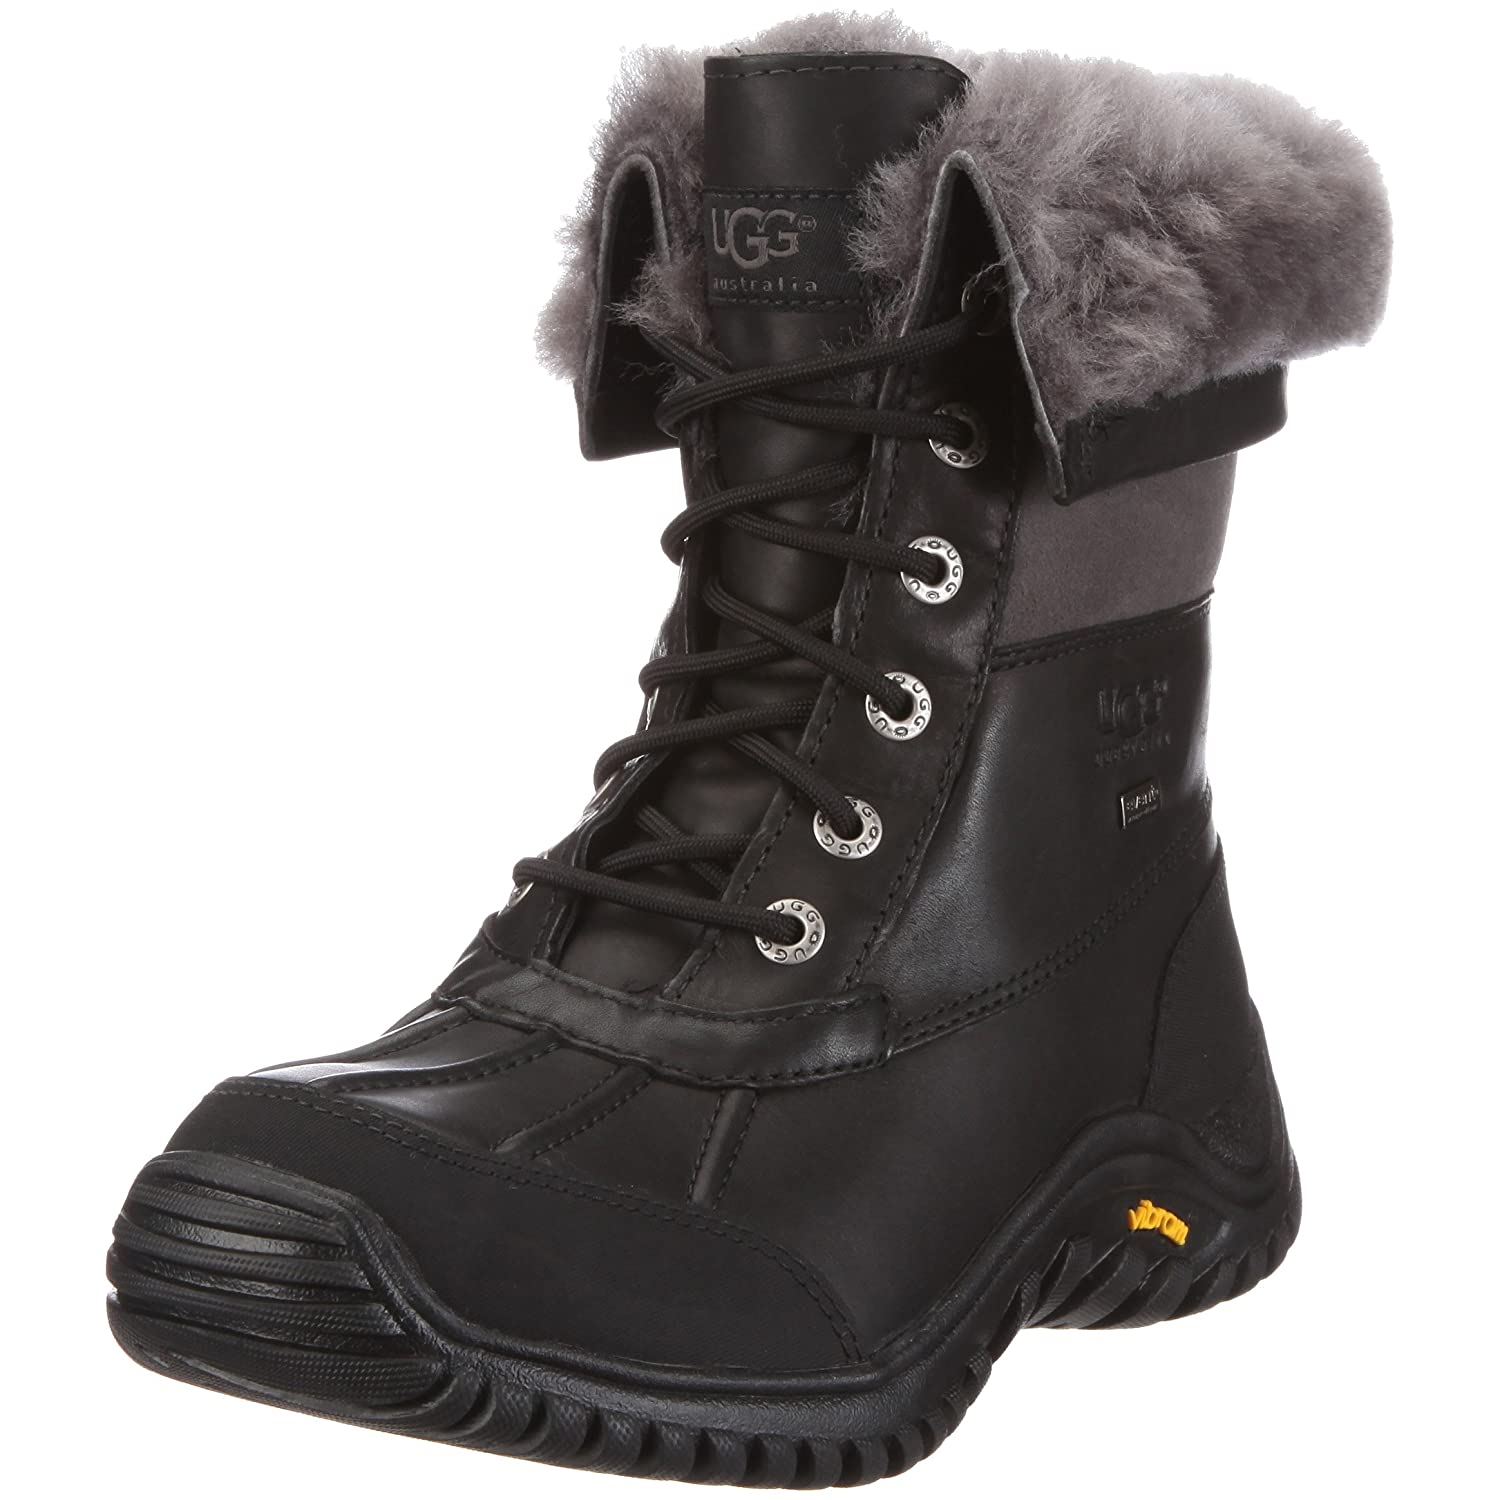 f9e598f91b7 UGG Women's Adirondack II Winter Boot